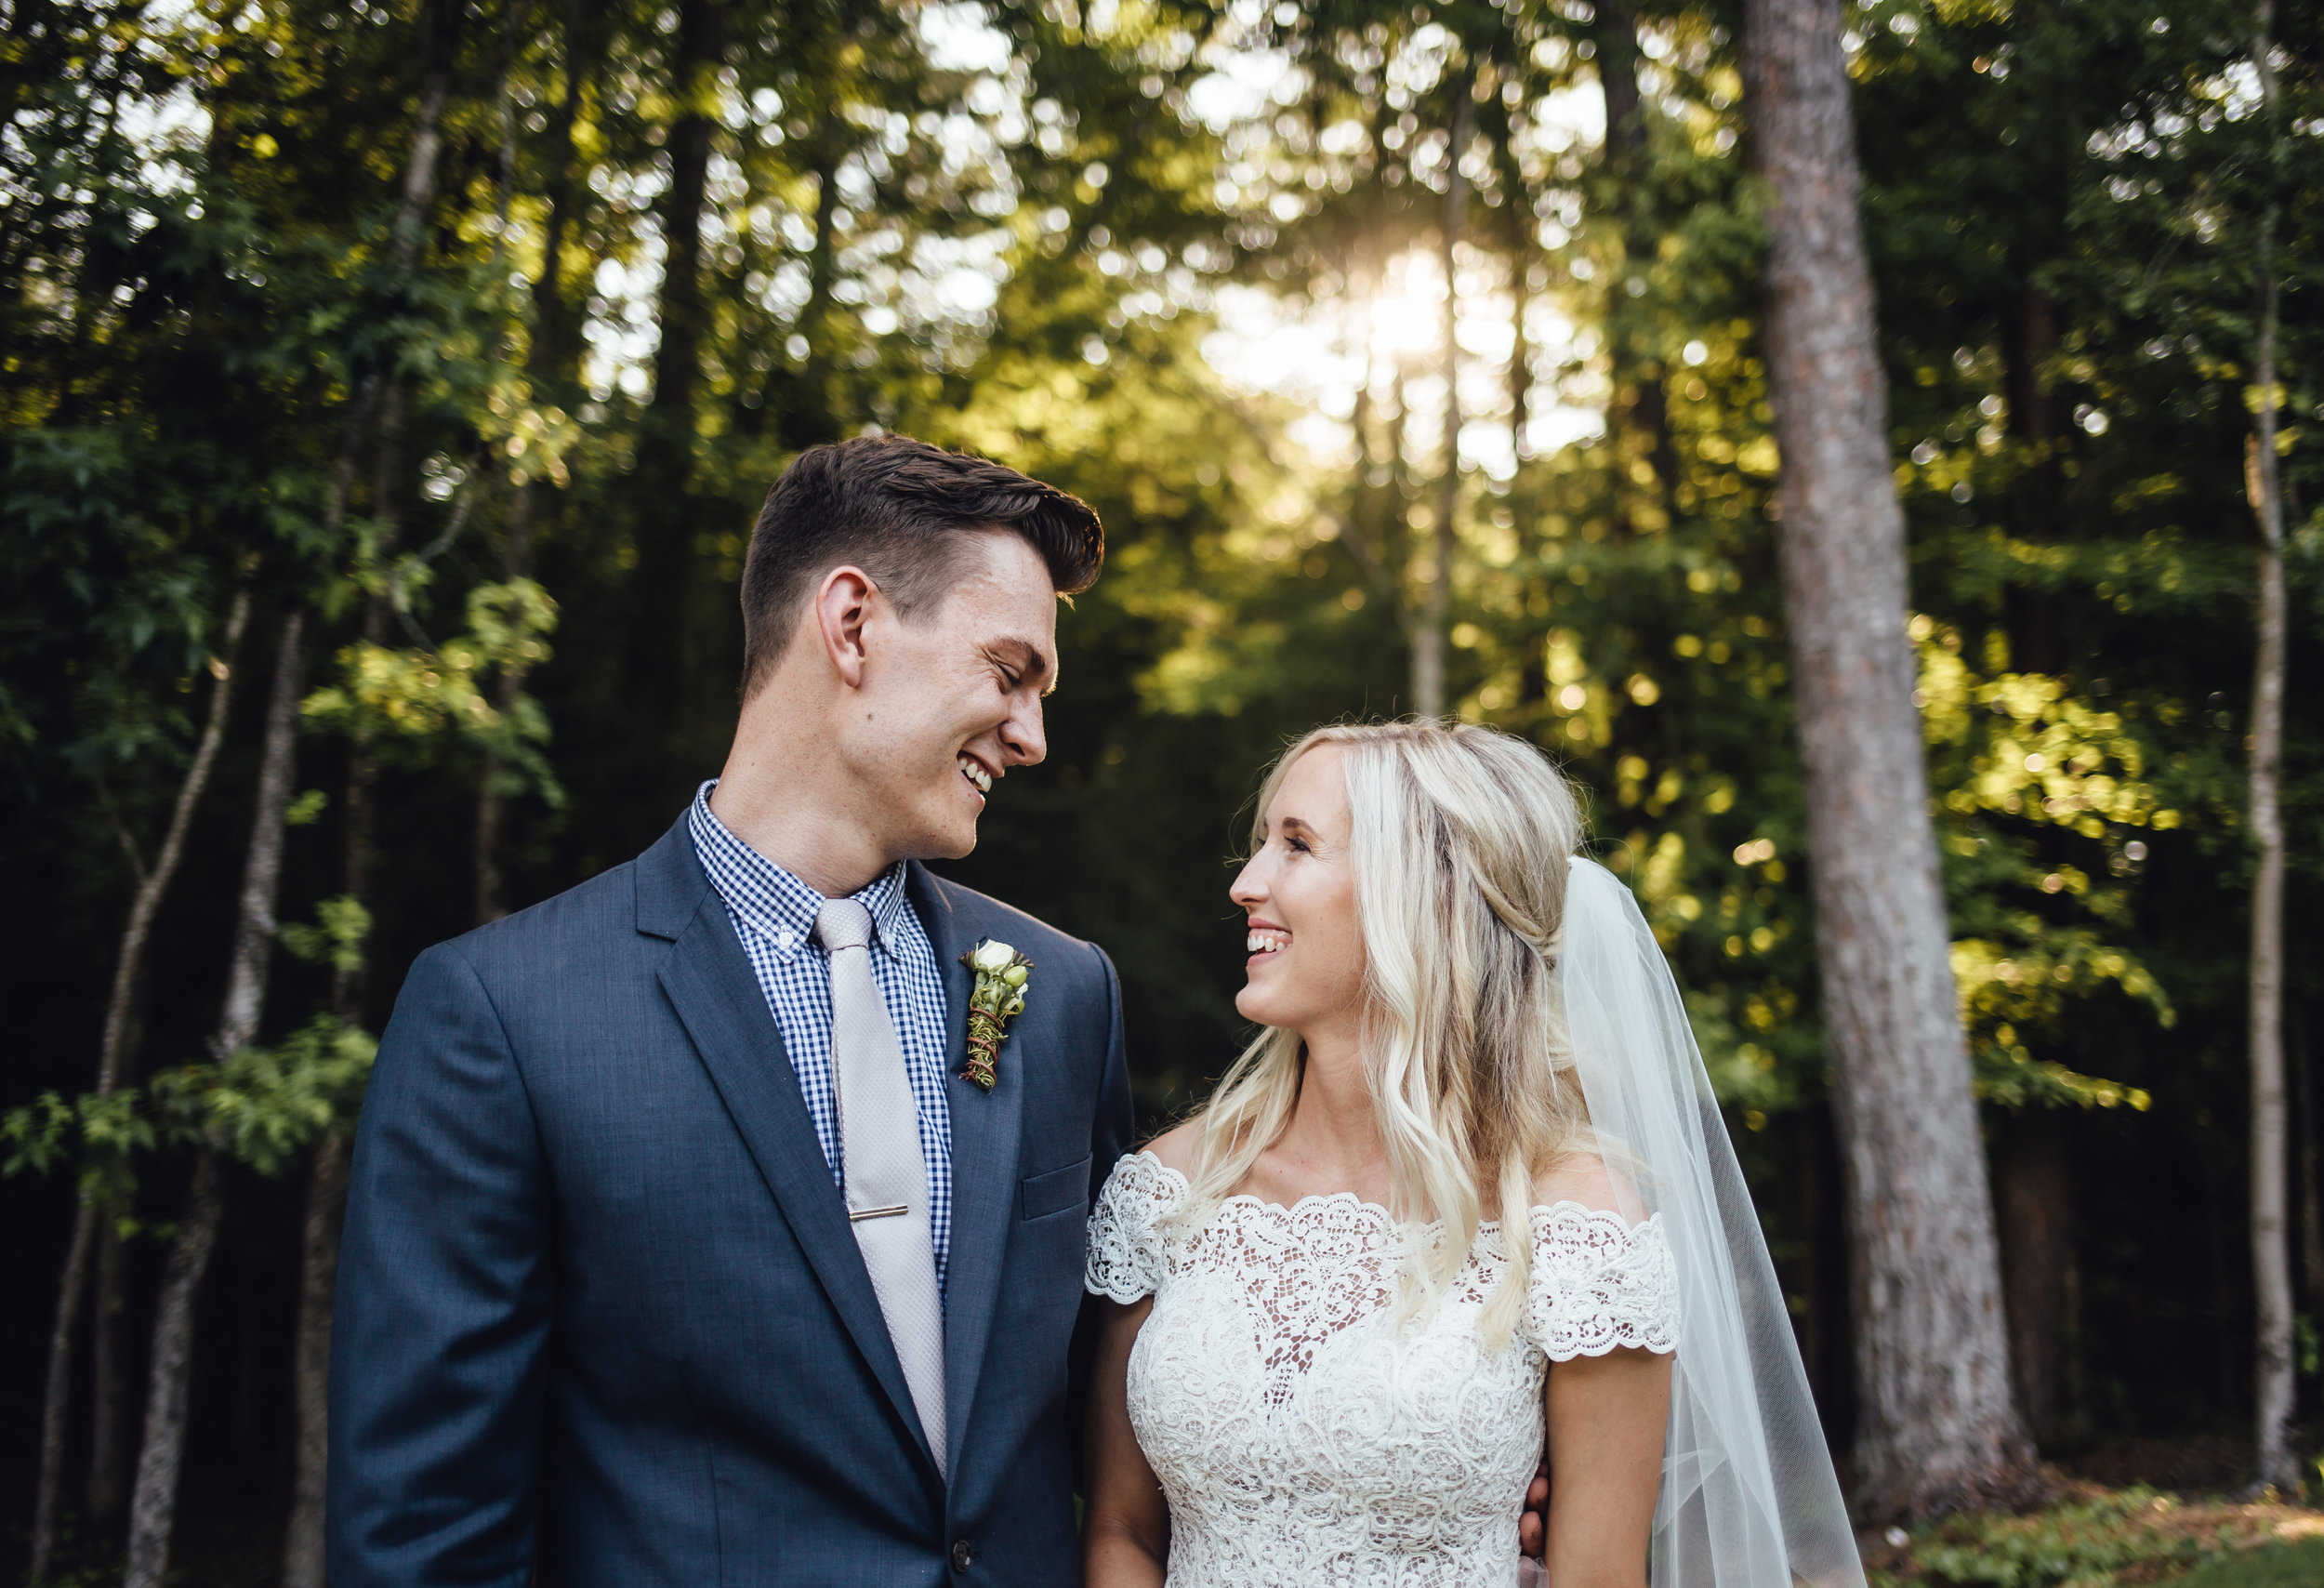 The Yarborough's - Crystal, you are so easy to work with. Your passion to not only take amazing photos, but to truly capture people's relationships and emotions is so evident in your work! Clay and I are so happy we chose you for our big day!